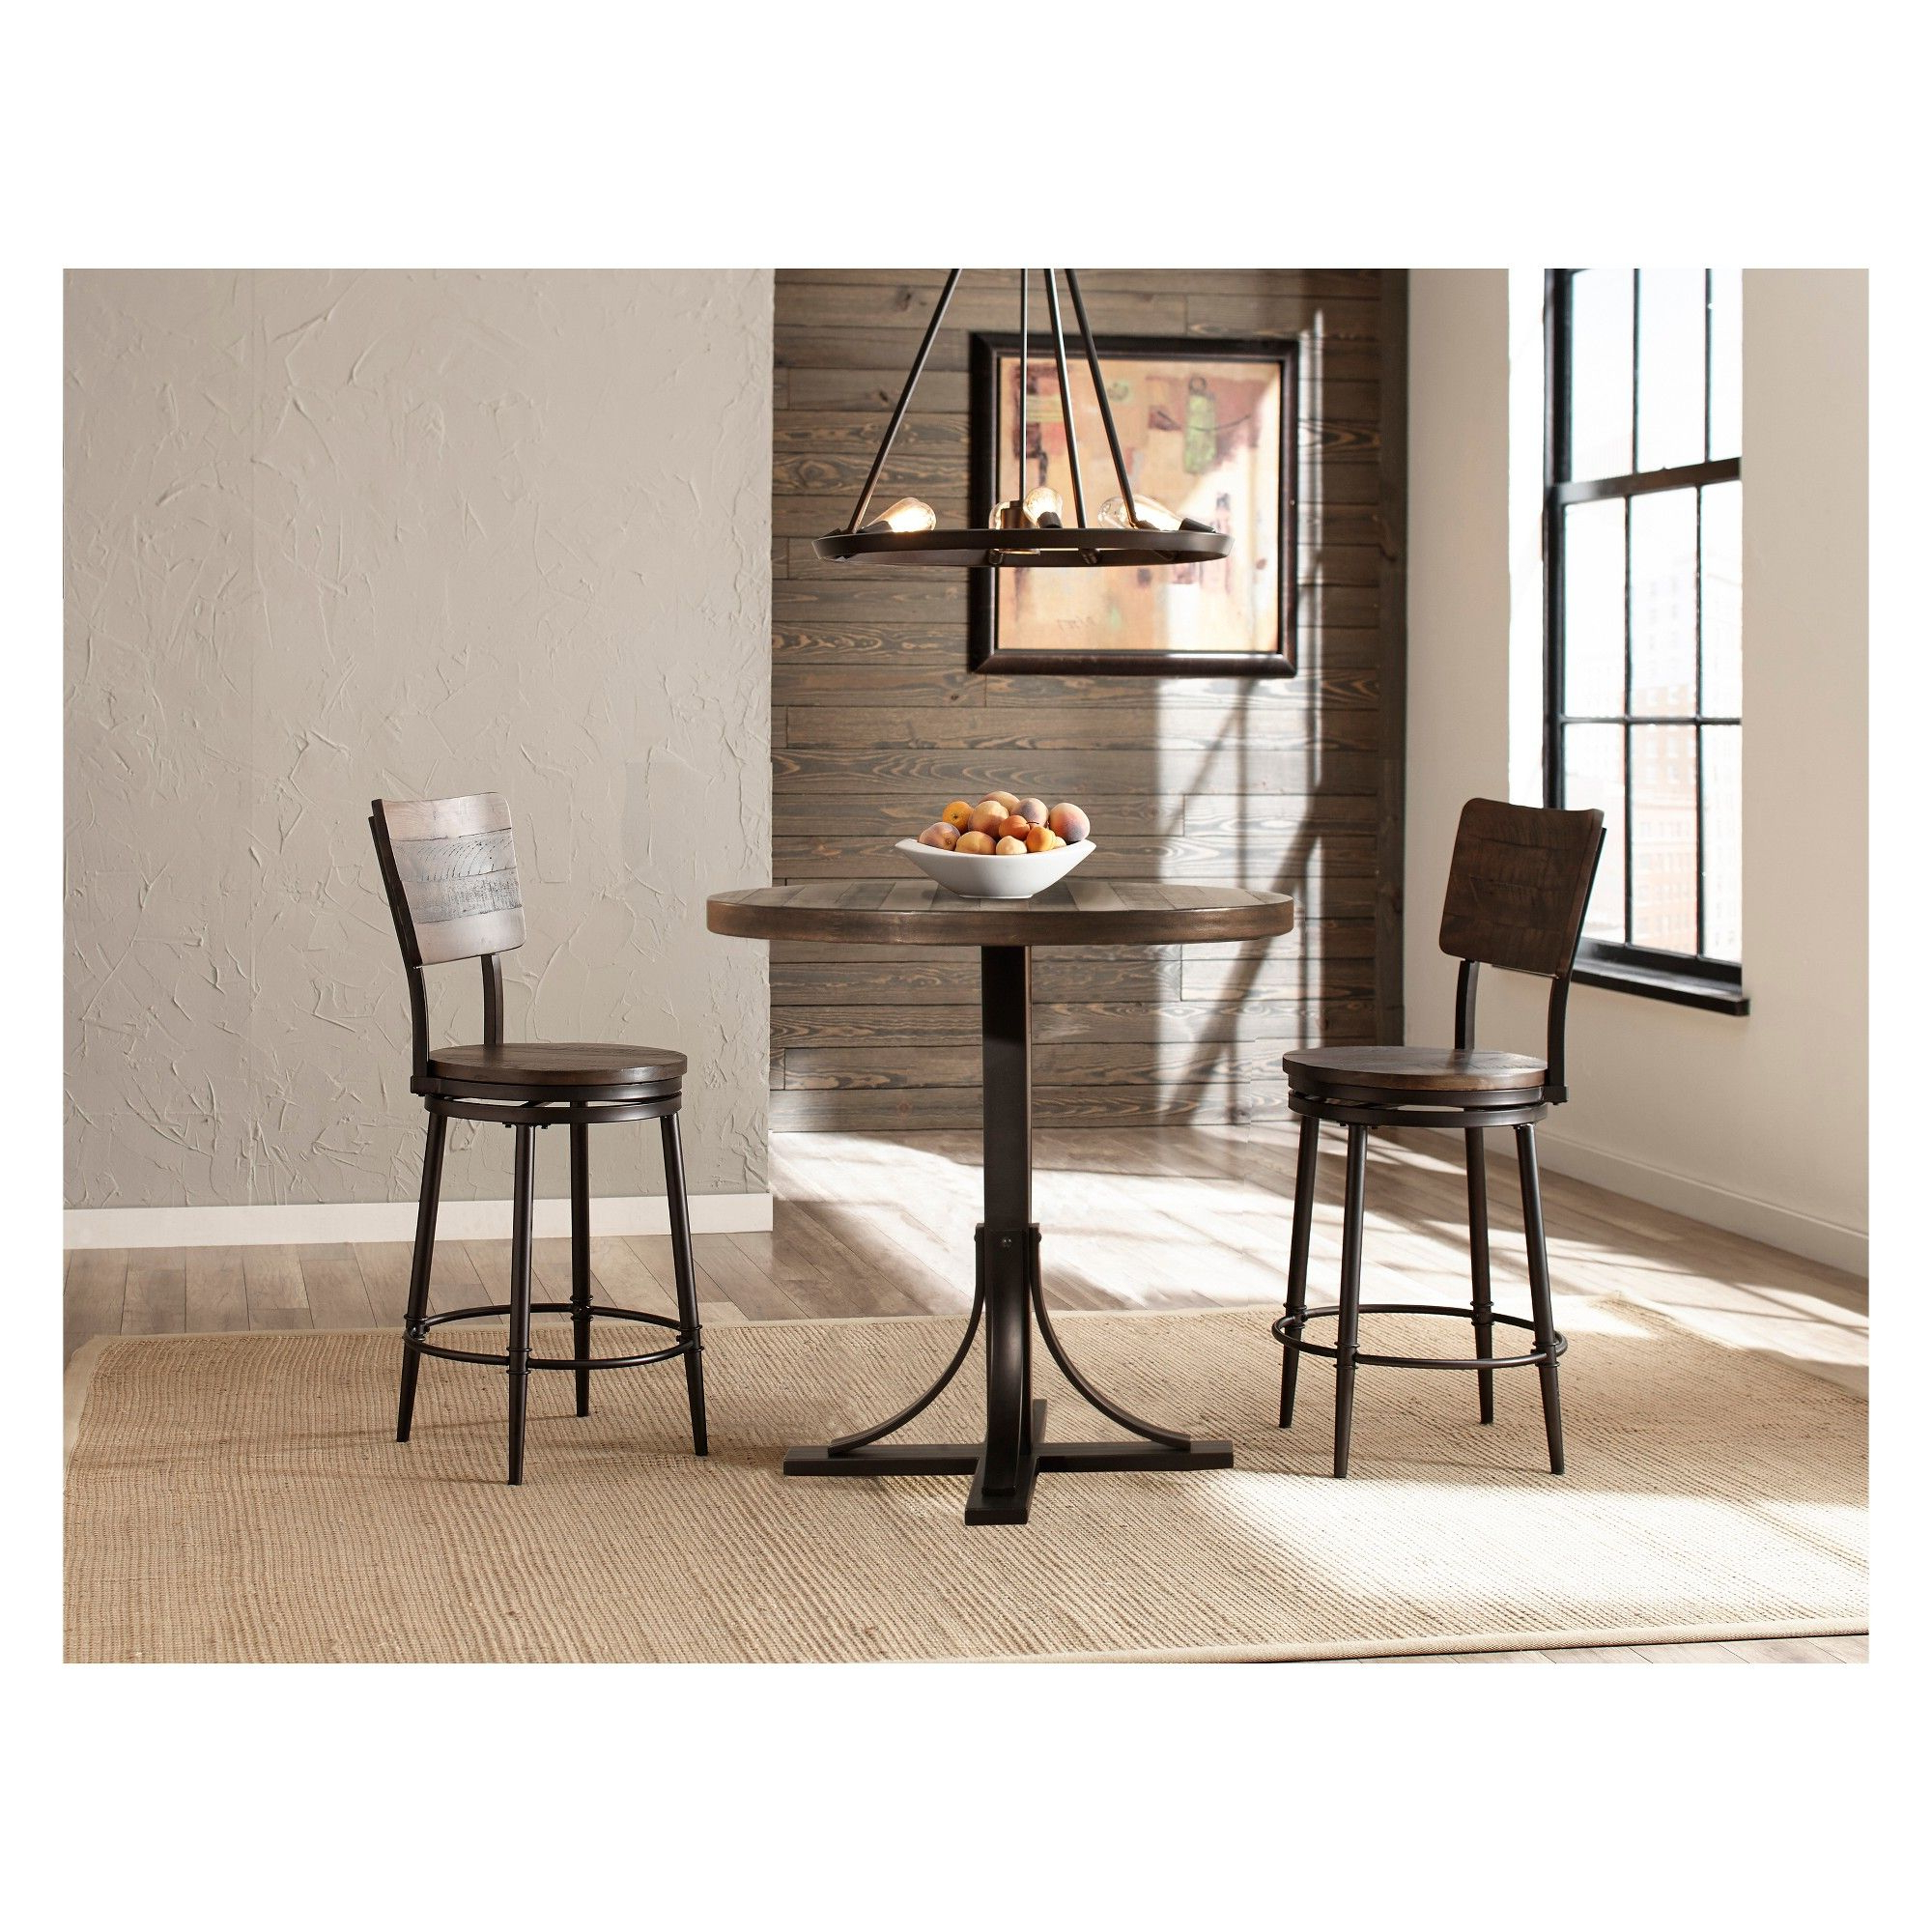 Newest Acacia Wood Medley Medium Dining Tables With Metal Base In Jennings 3Pc Counter Height Dining Set With Swivel Counter (Gallery 9 of 30)